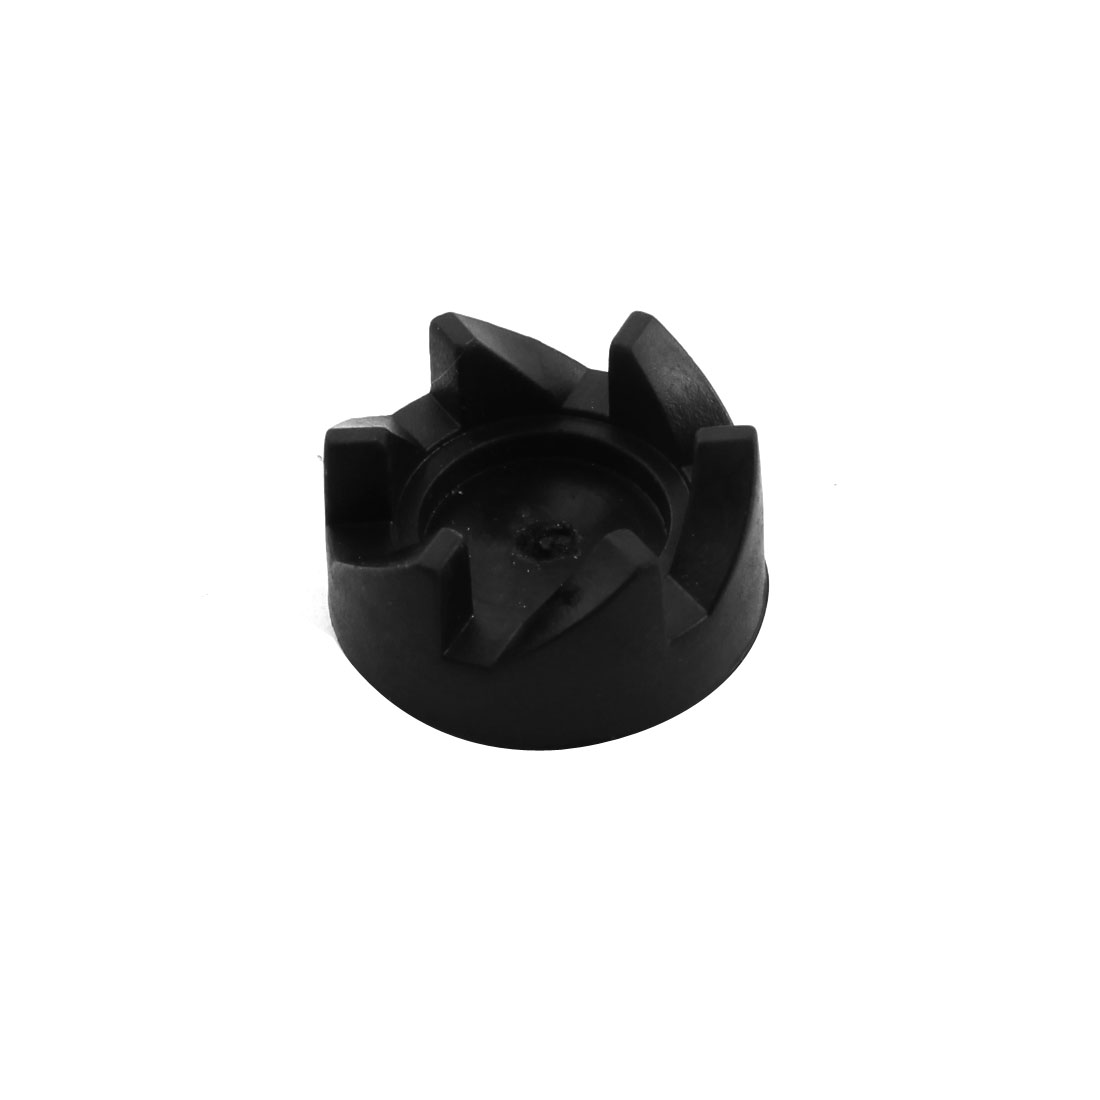 Kitchen Electric Blender Part 34mm Dia Black Rubber 6 Teeth Coupling Coupler Drive Clutch Adapter